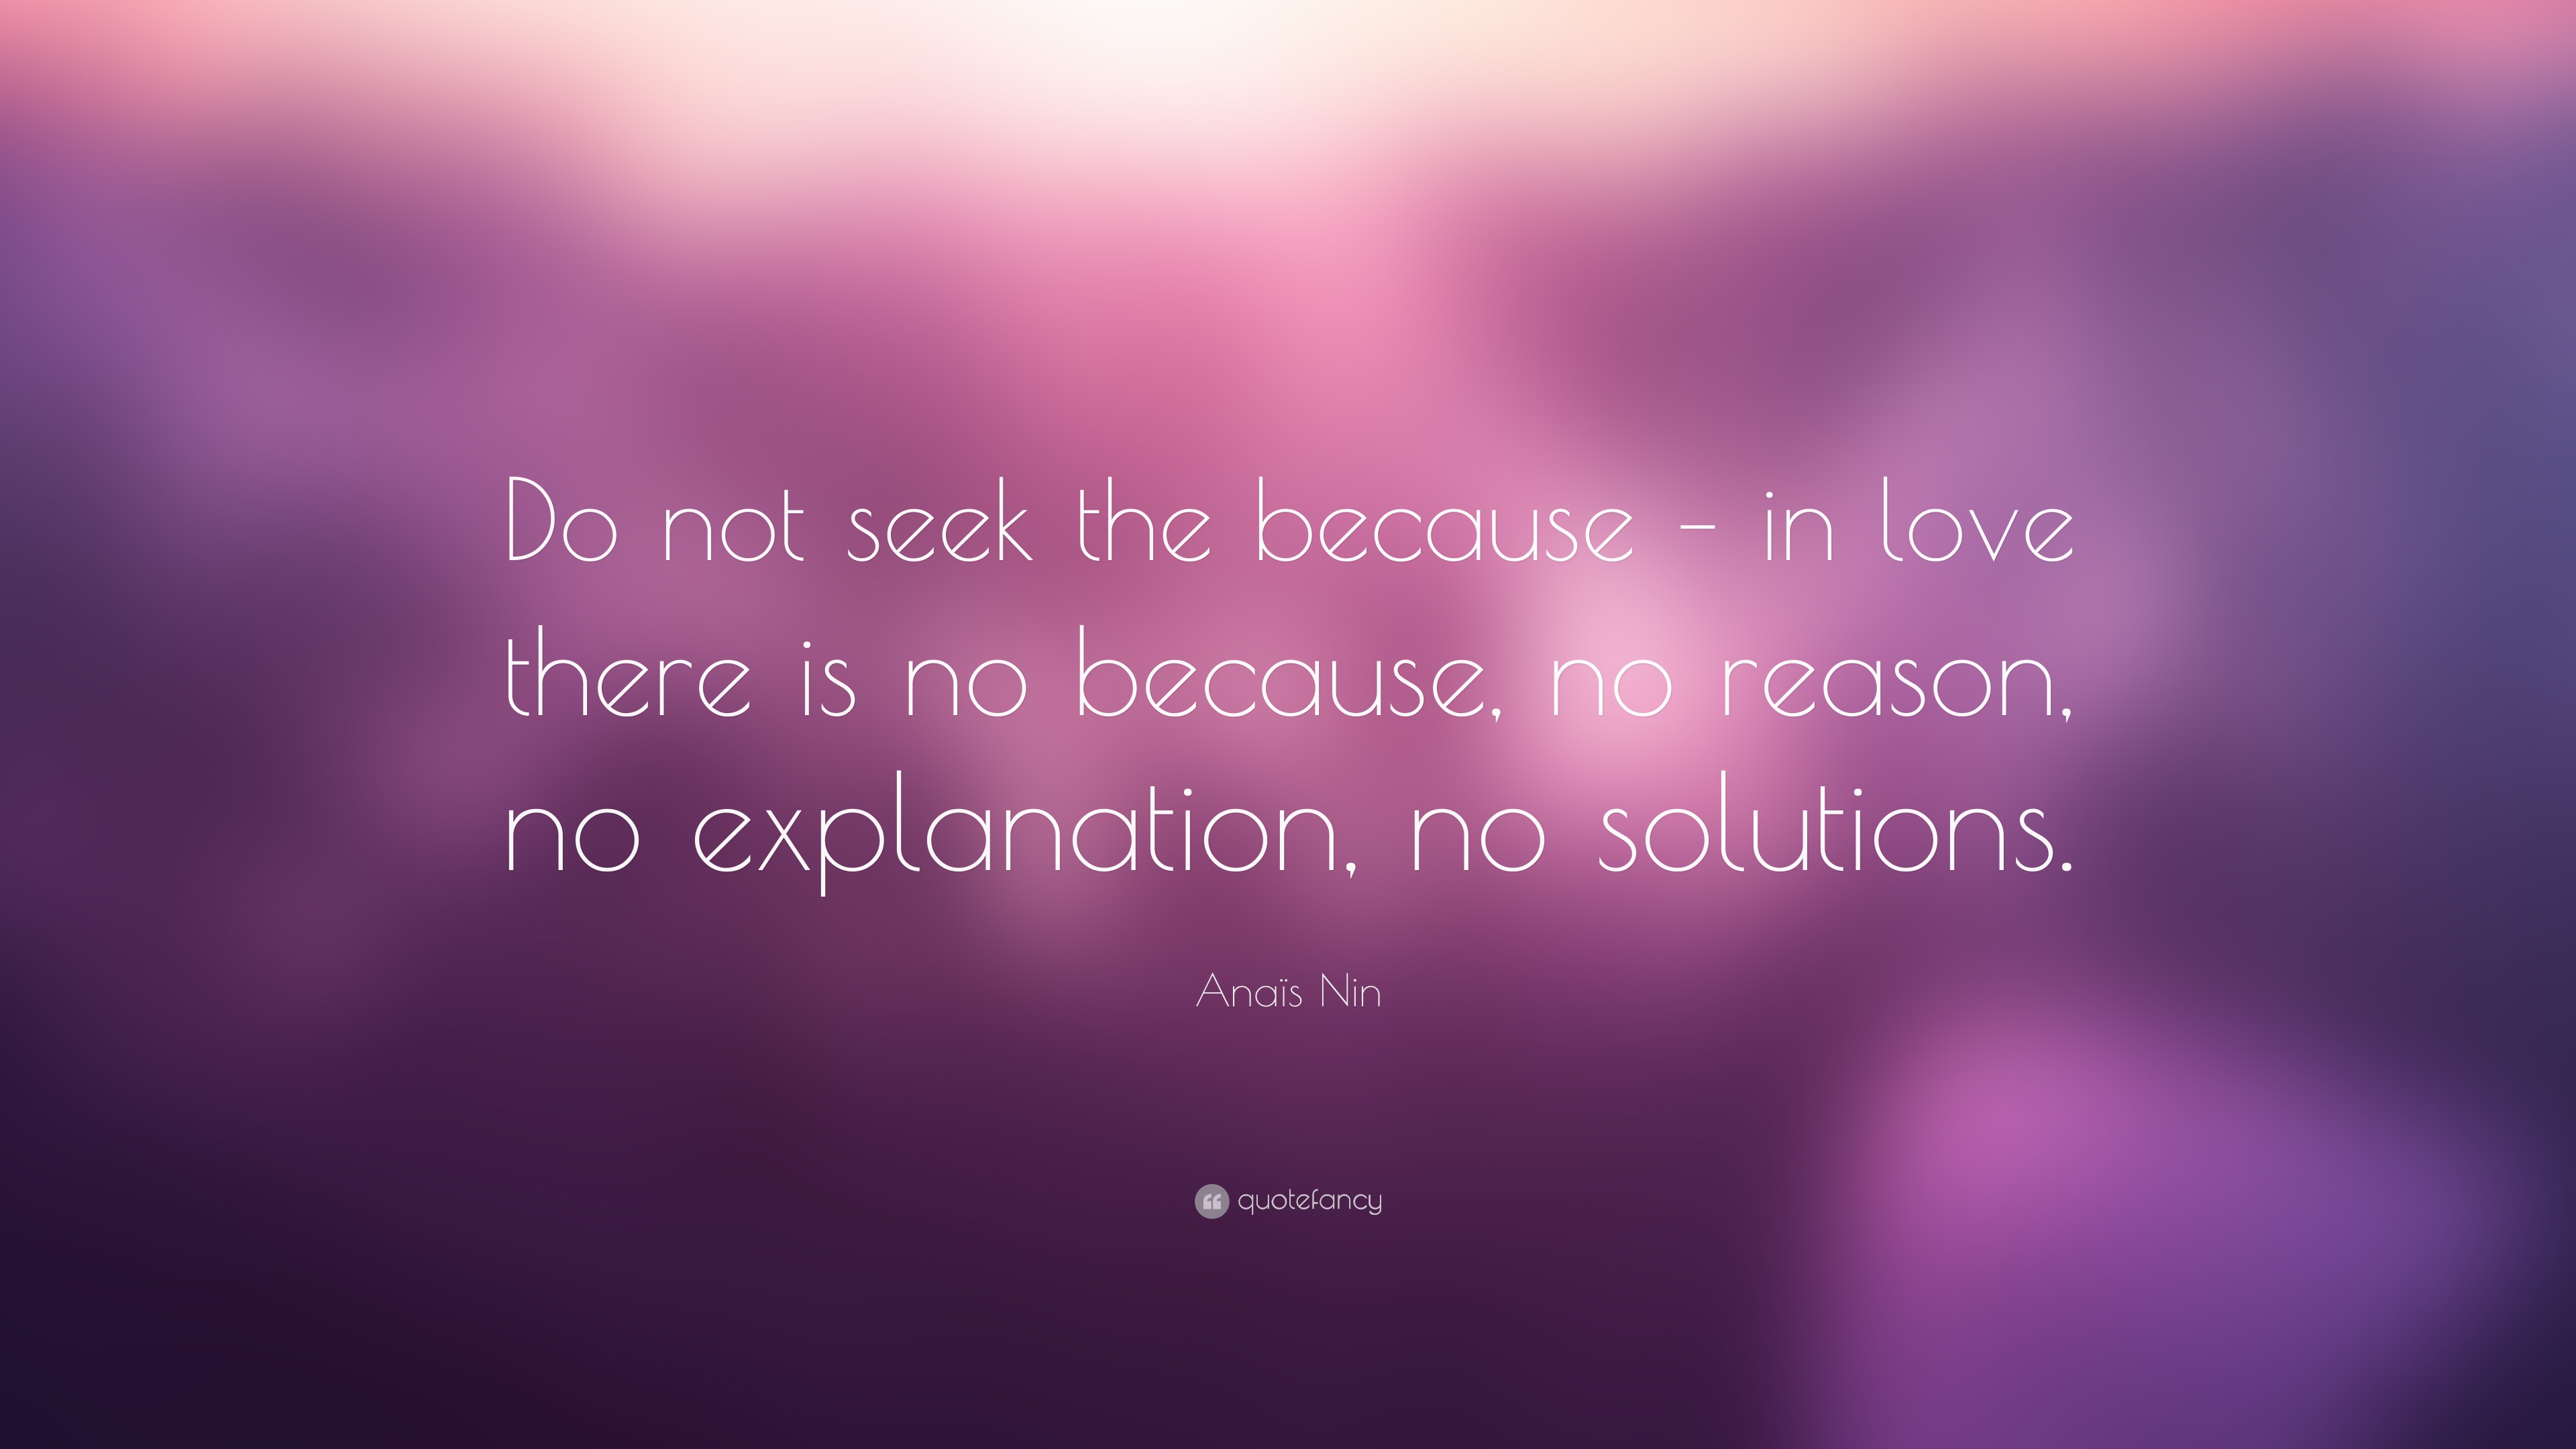 ana s nin quote do not seek the because in love there